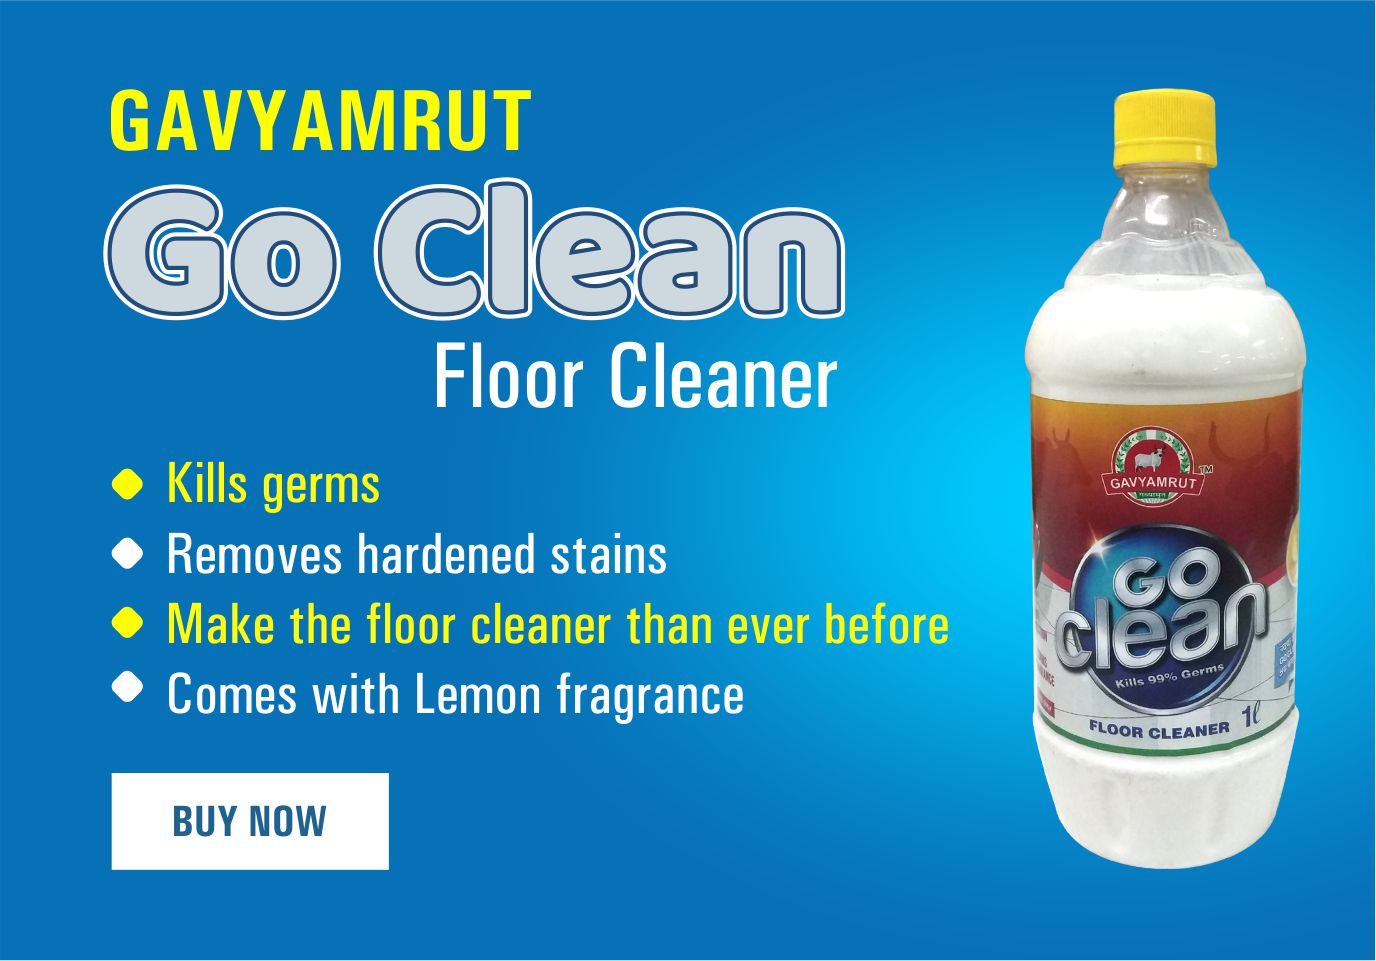 Gavyamrut Go Clean Floor Cleaner